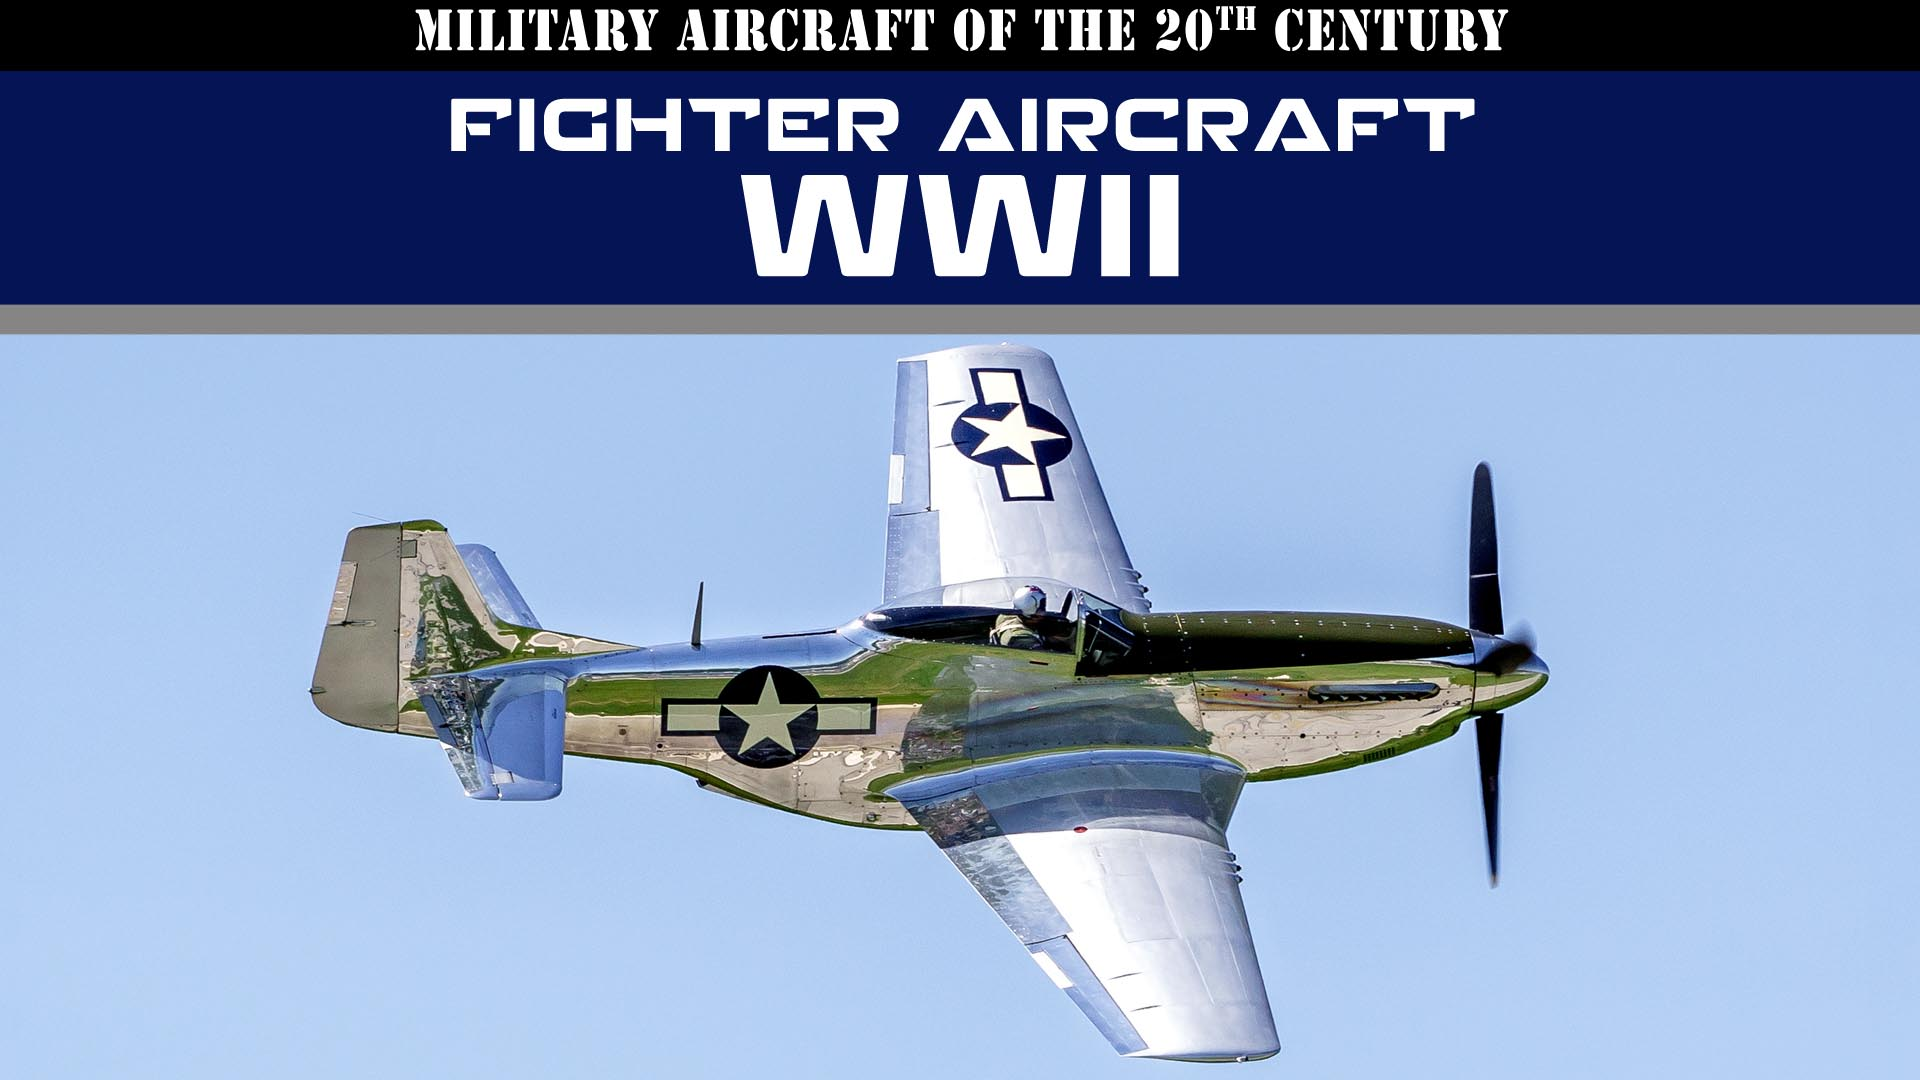 Military Aircraft of the 20th Century: Fighter Aircraft - WWII -